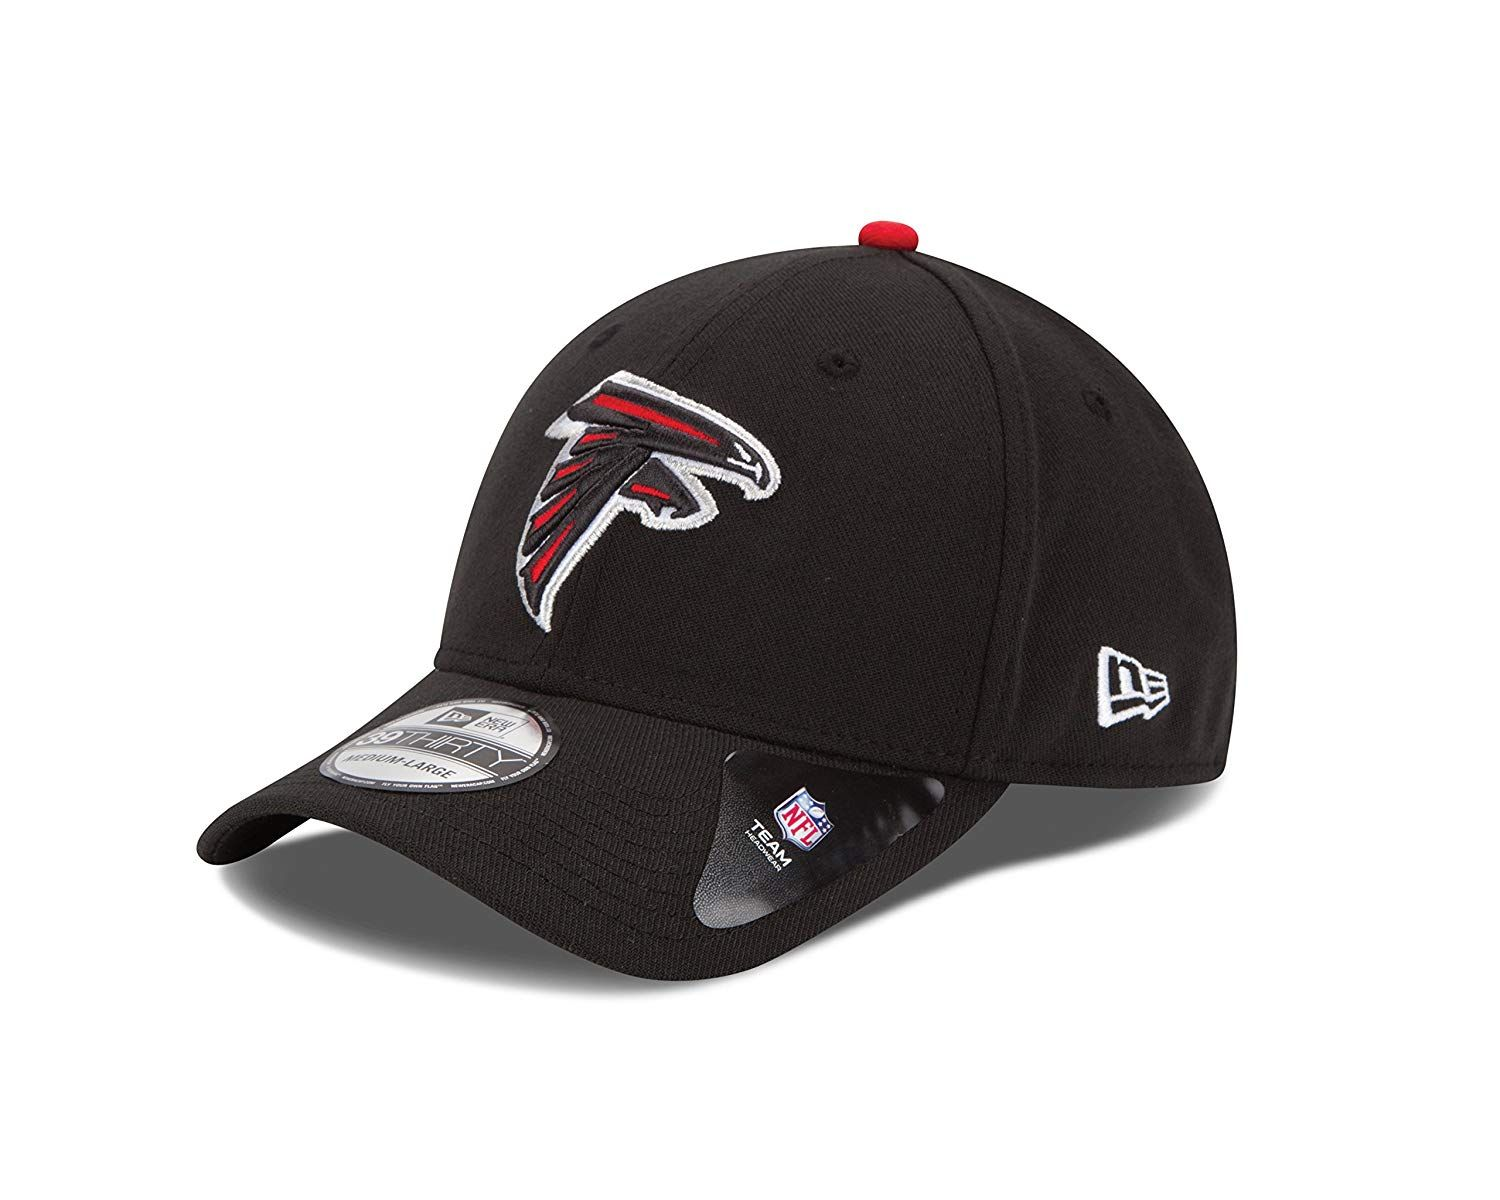 13d35cc03b8 NFL Atlanta Falcons Team Classic 39THIRTY Stretch Fit Cap